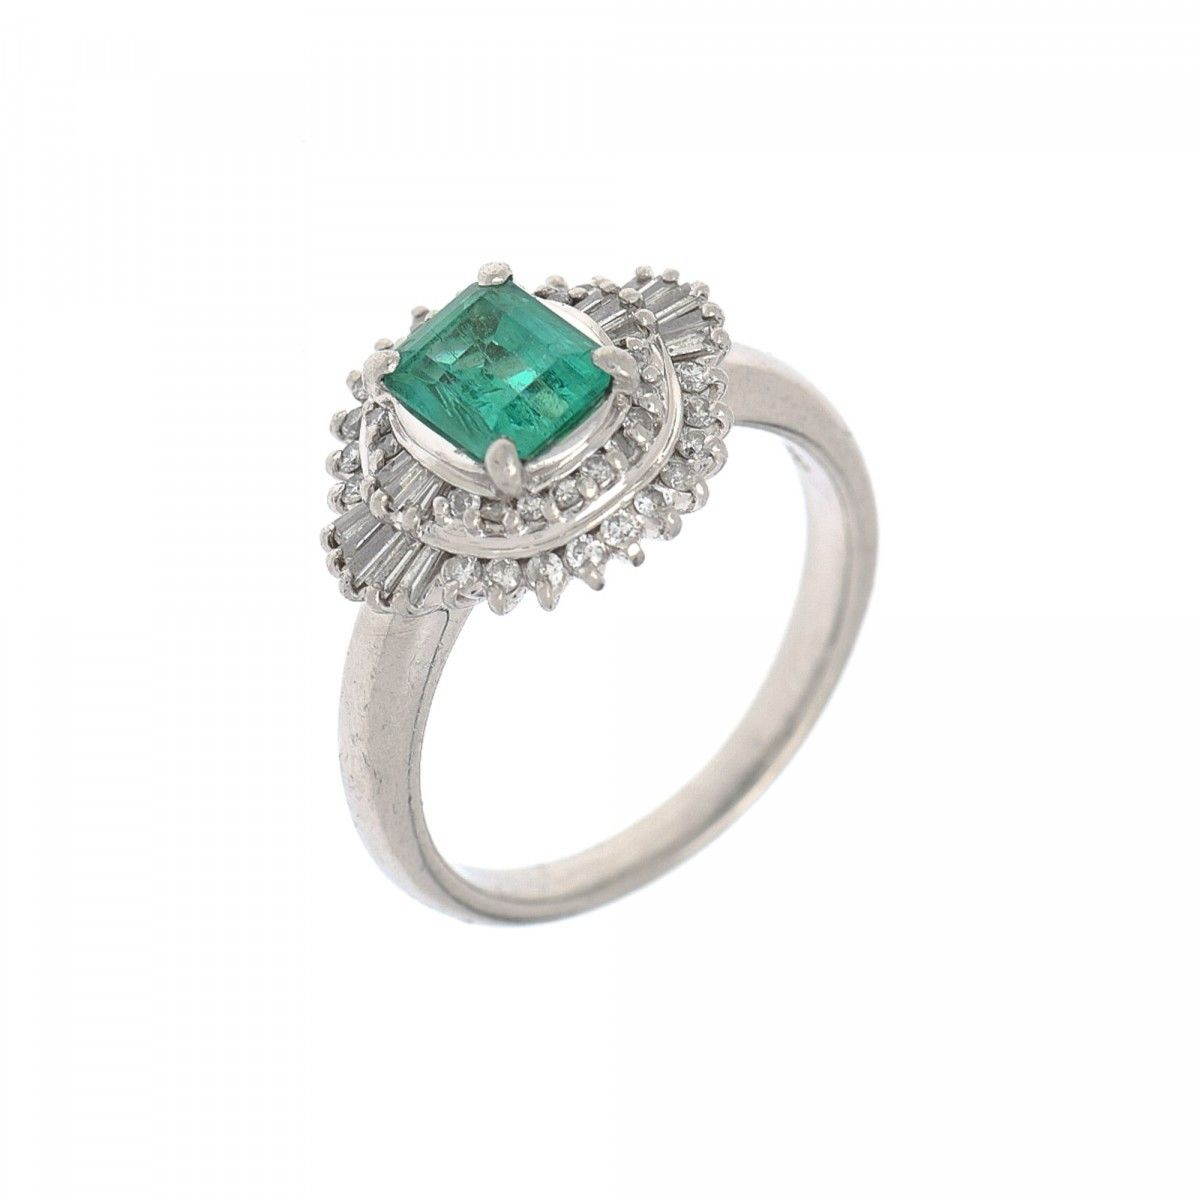 erstwhileco emerald rings best estate jewelry on pinterest vintage images jewellery engagement